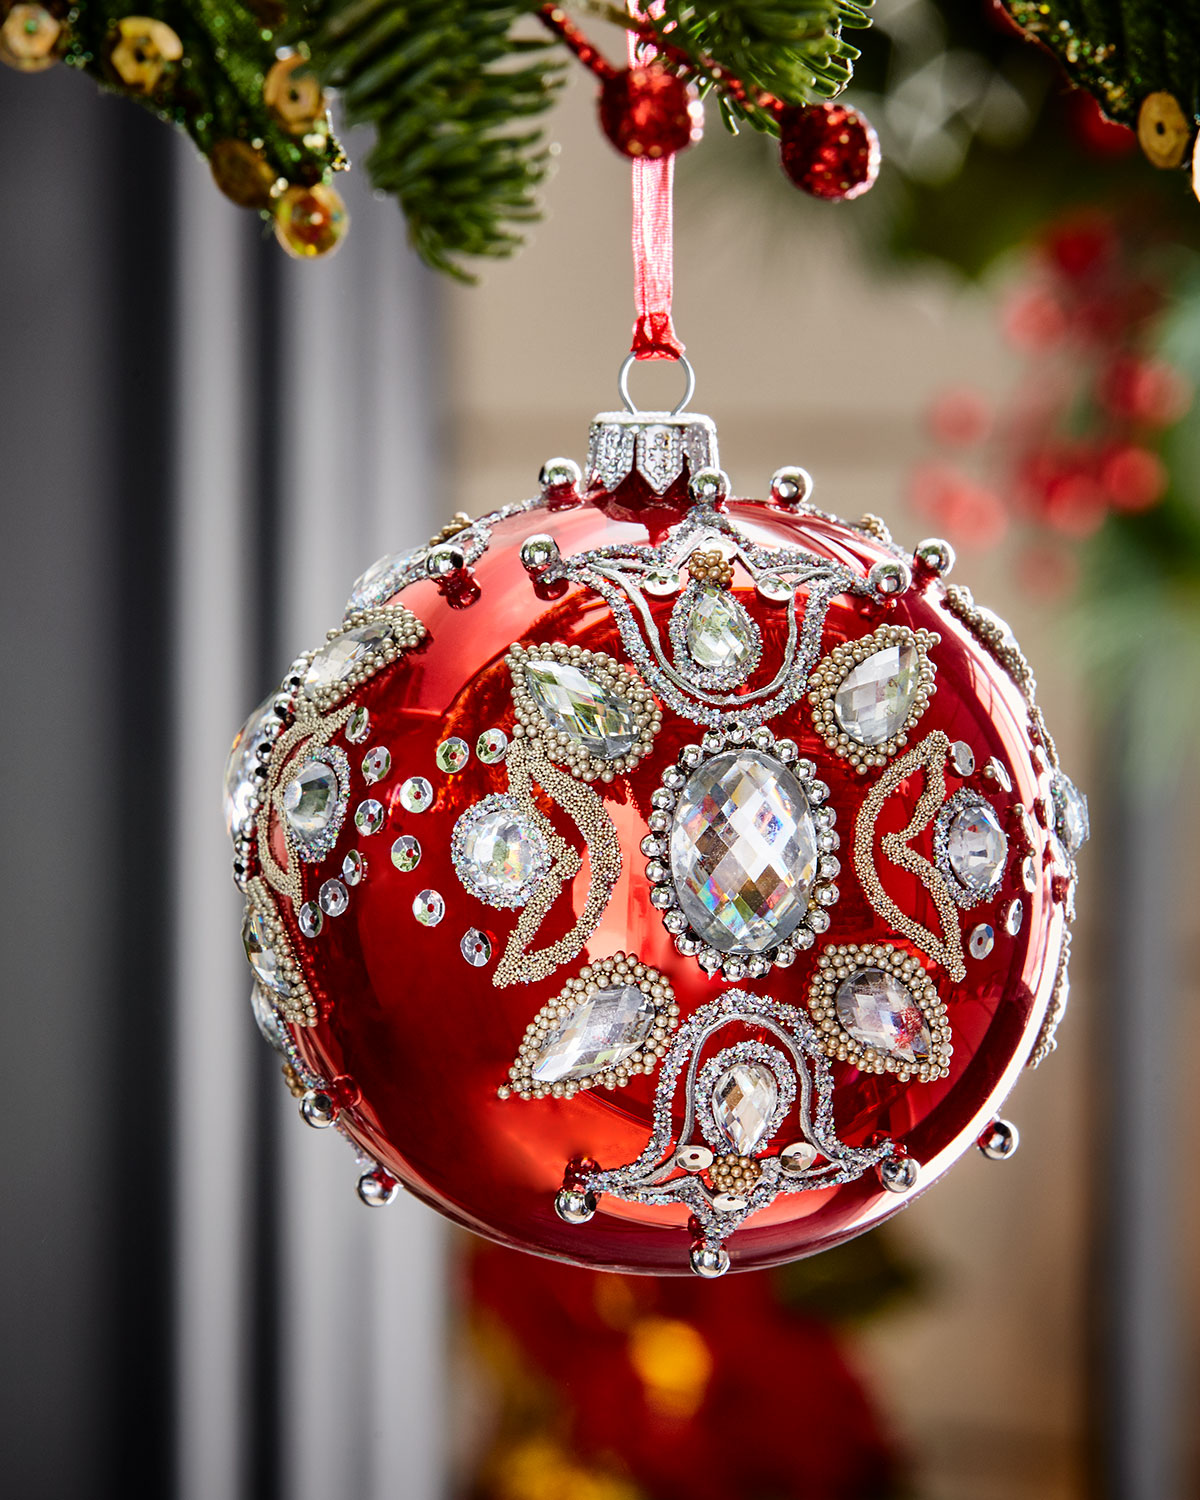 Red Shiny Glass Ball Christmas Ornament With Jewels ...